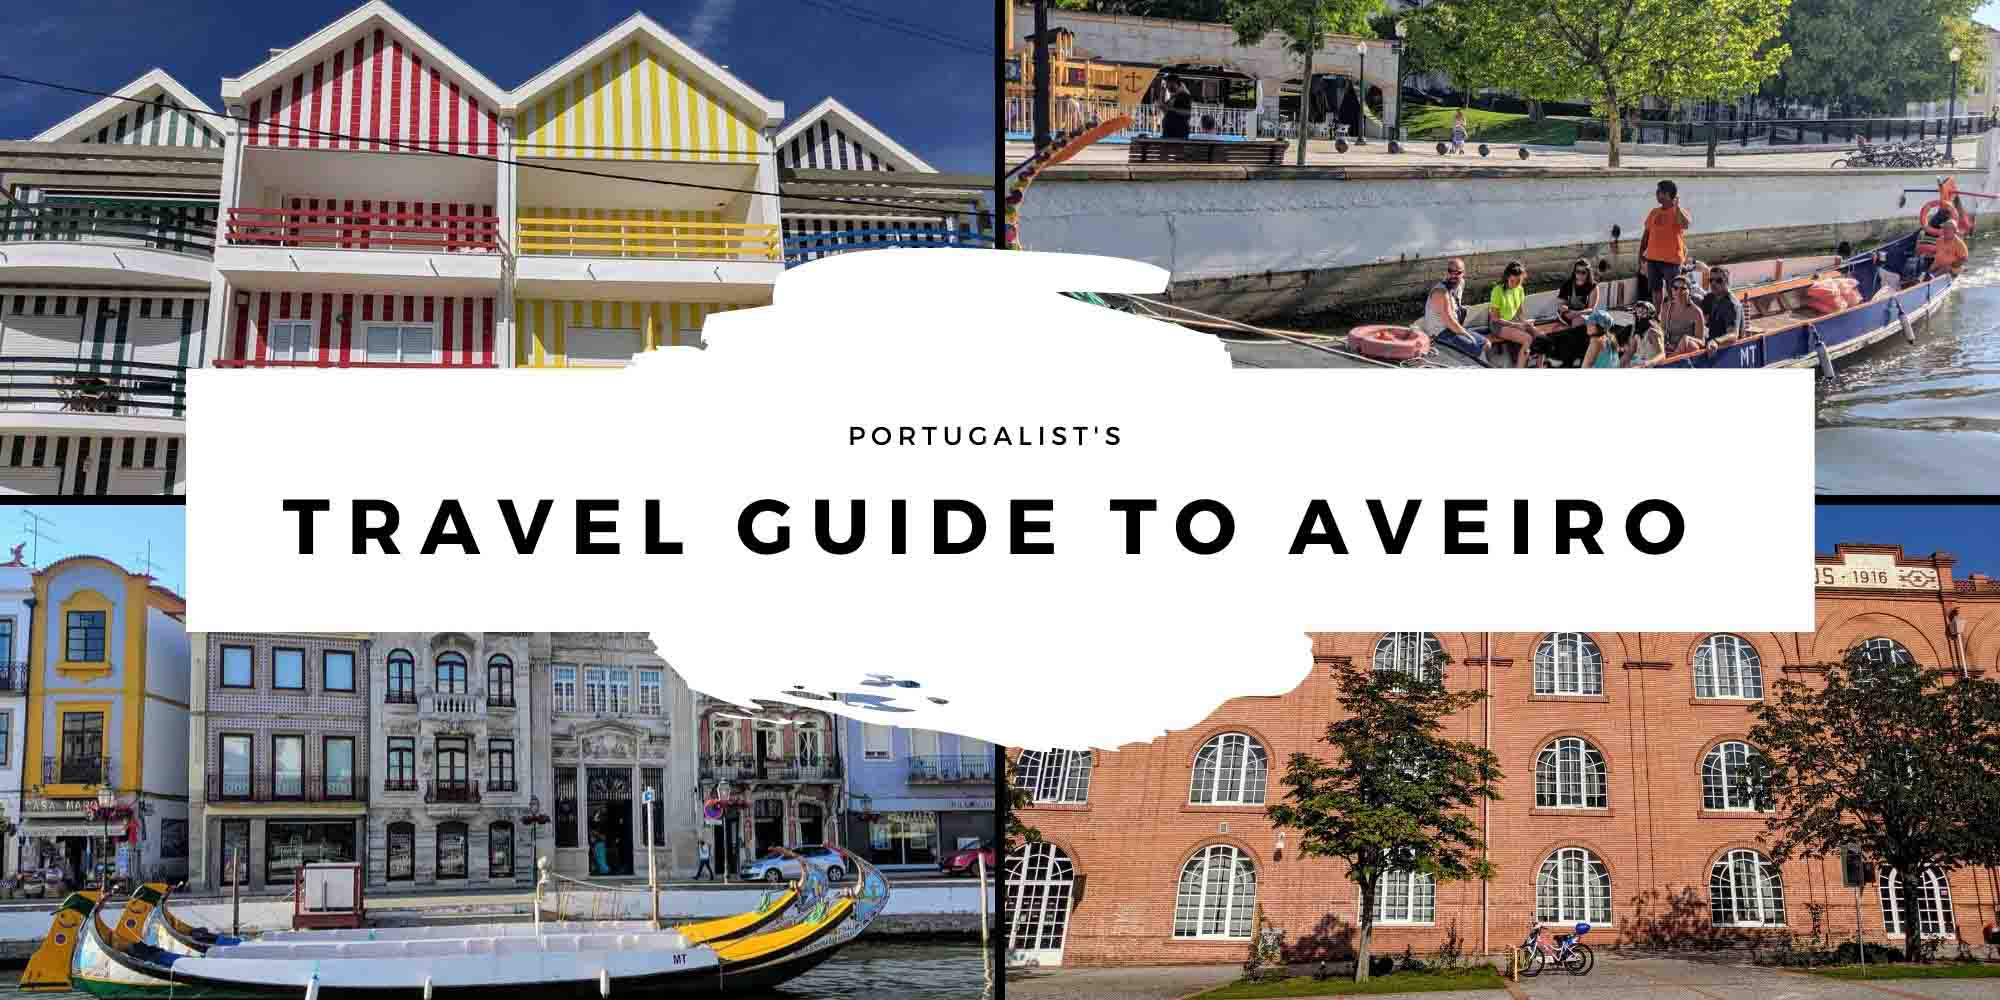 aveiro travel guide header